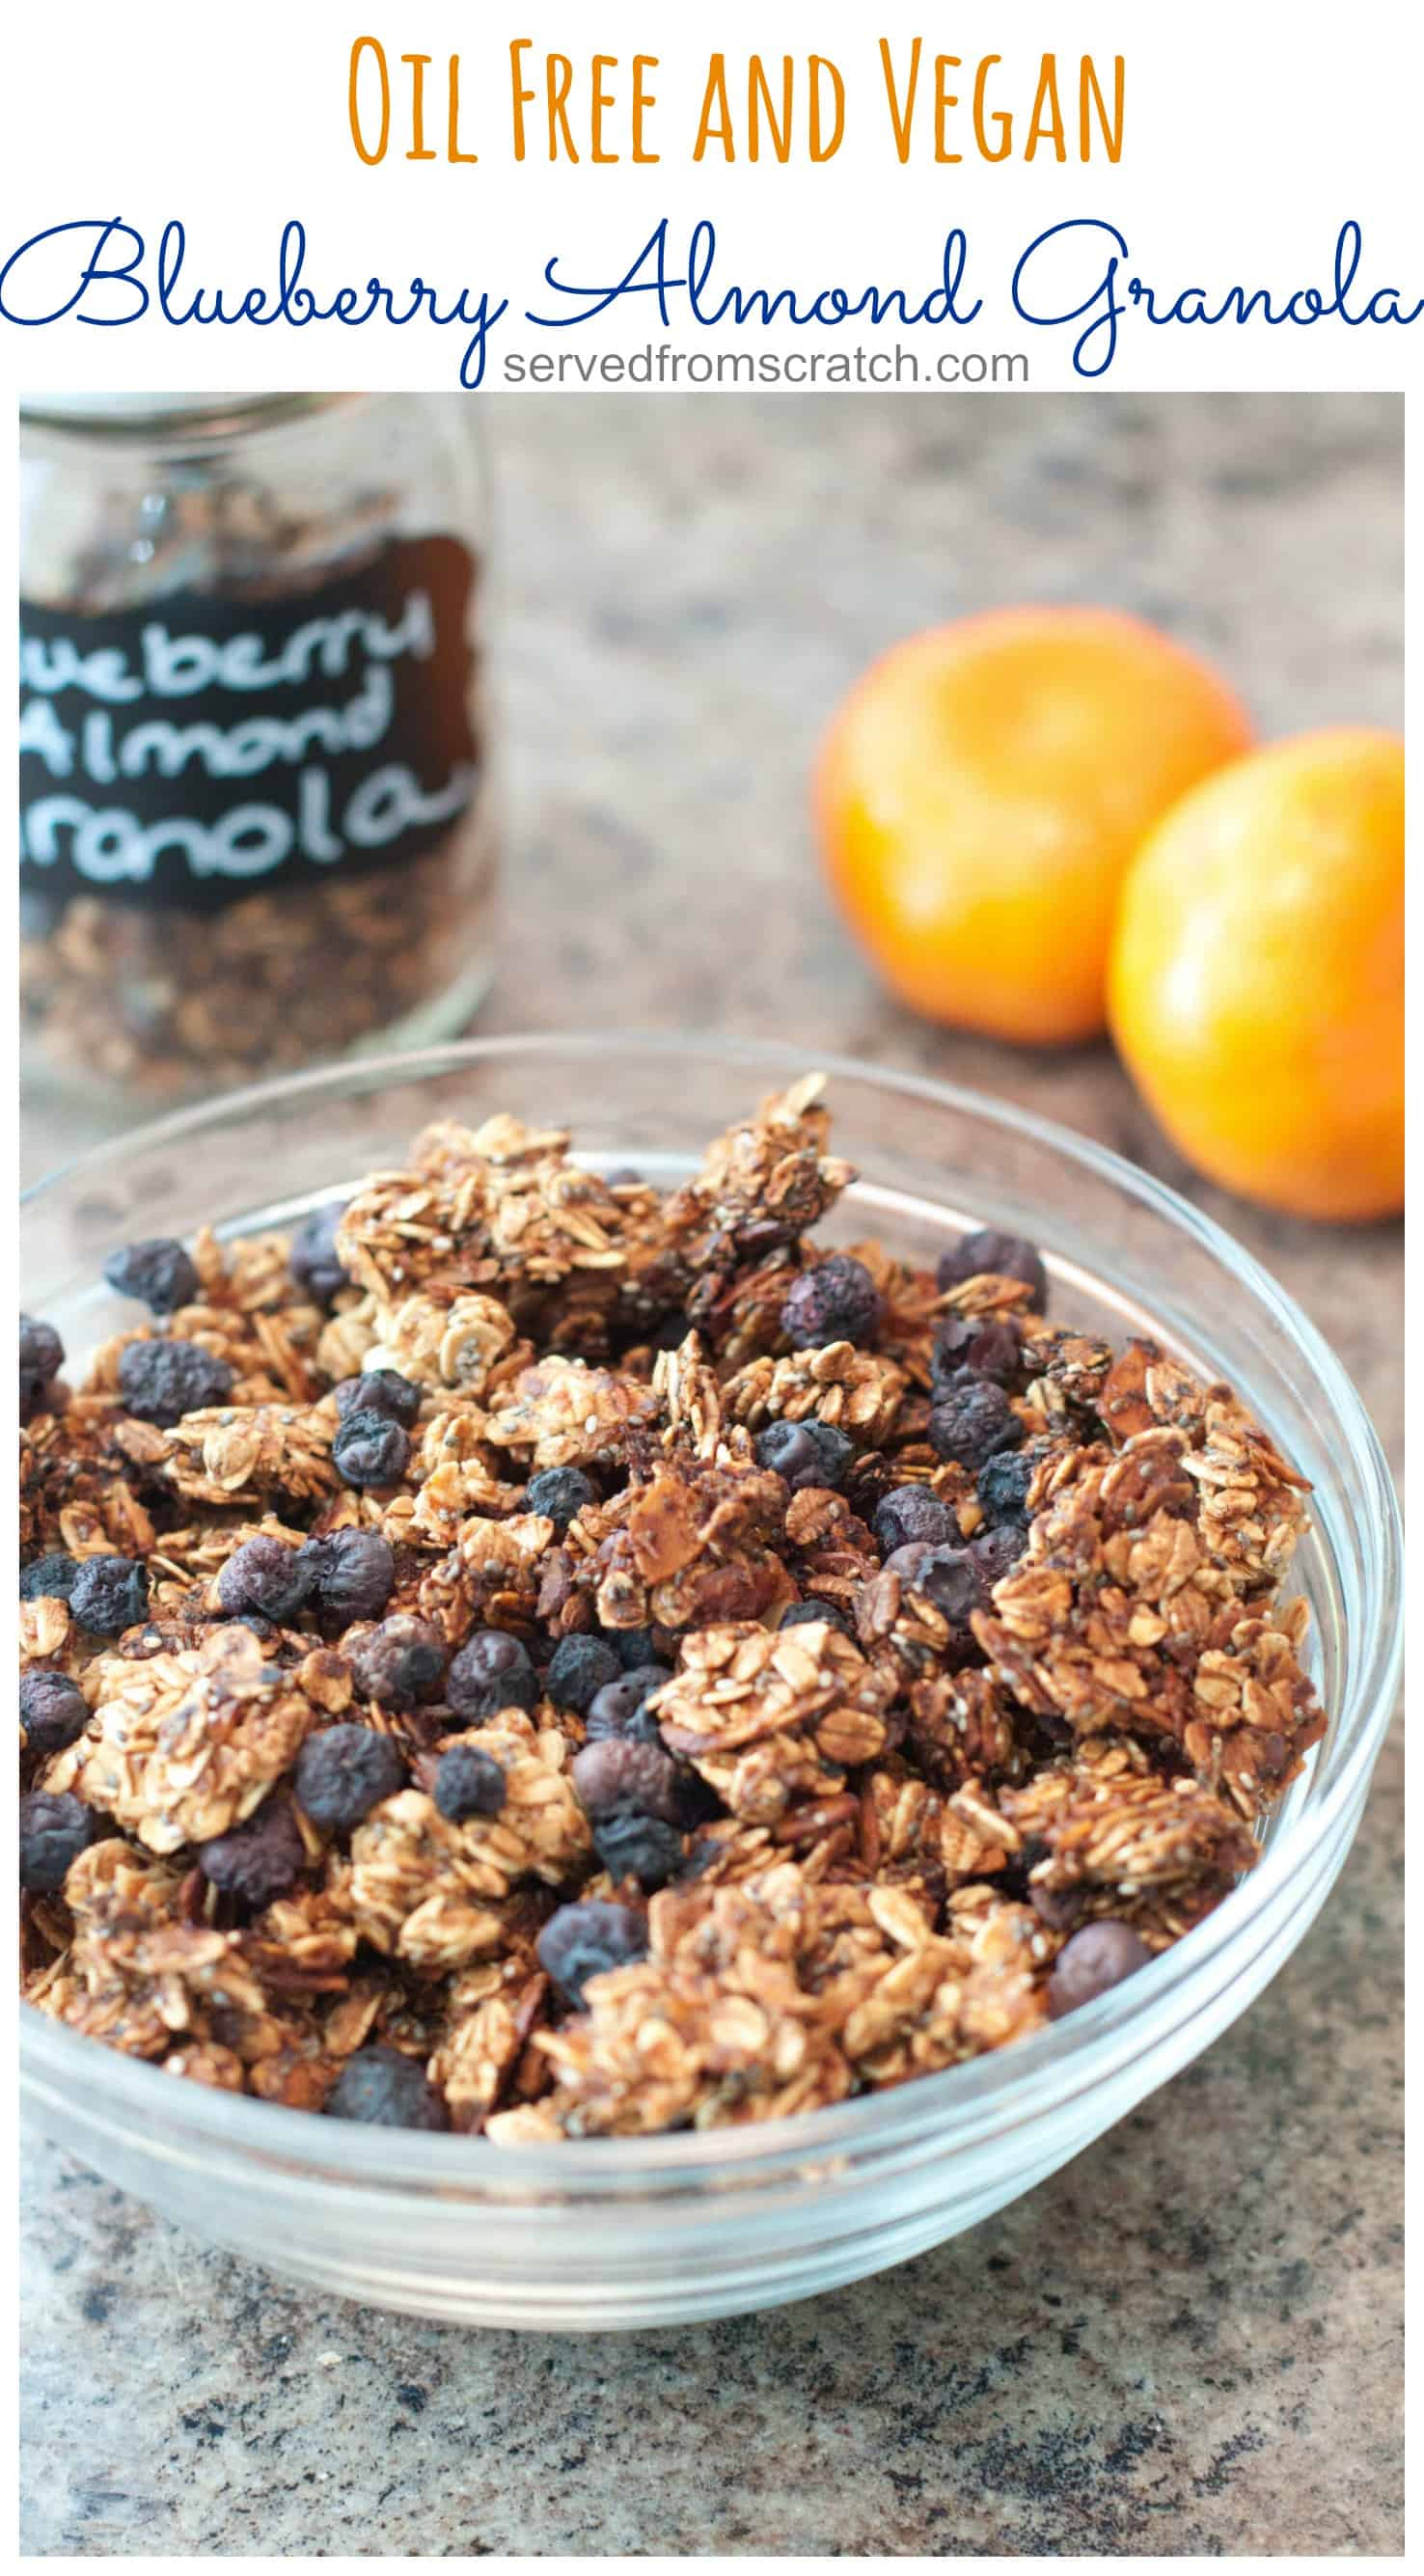 Oil free, vegan Blueberry Almond Granola from scratch